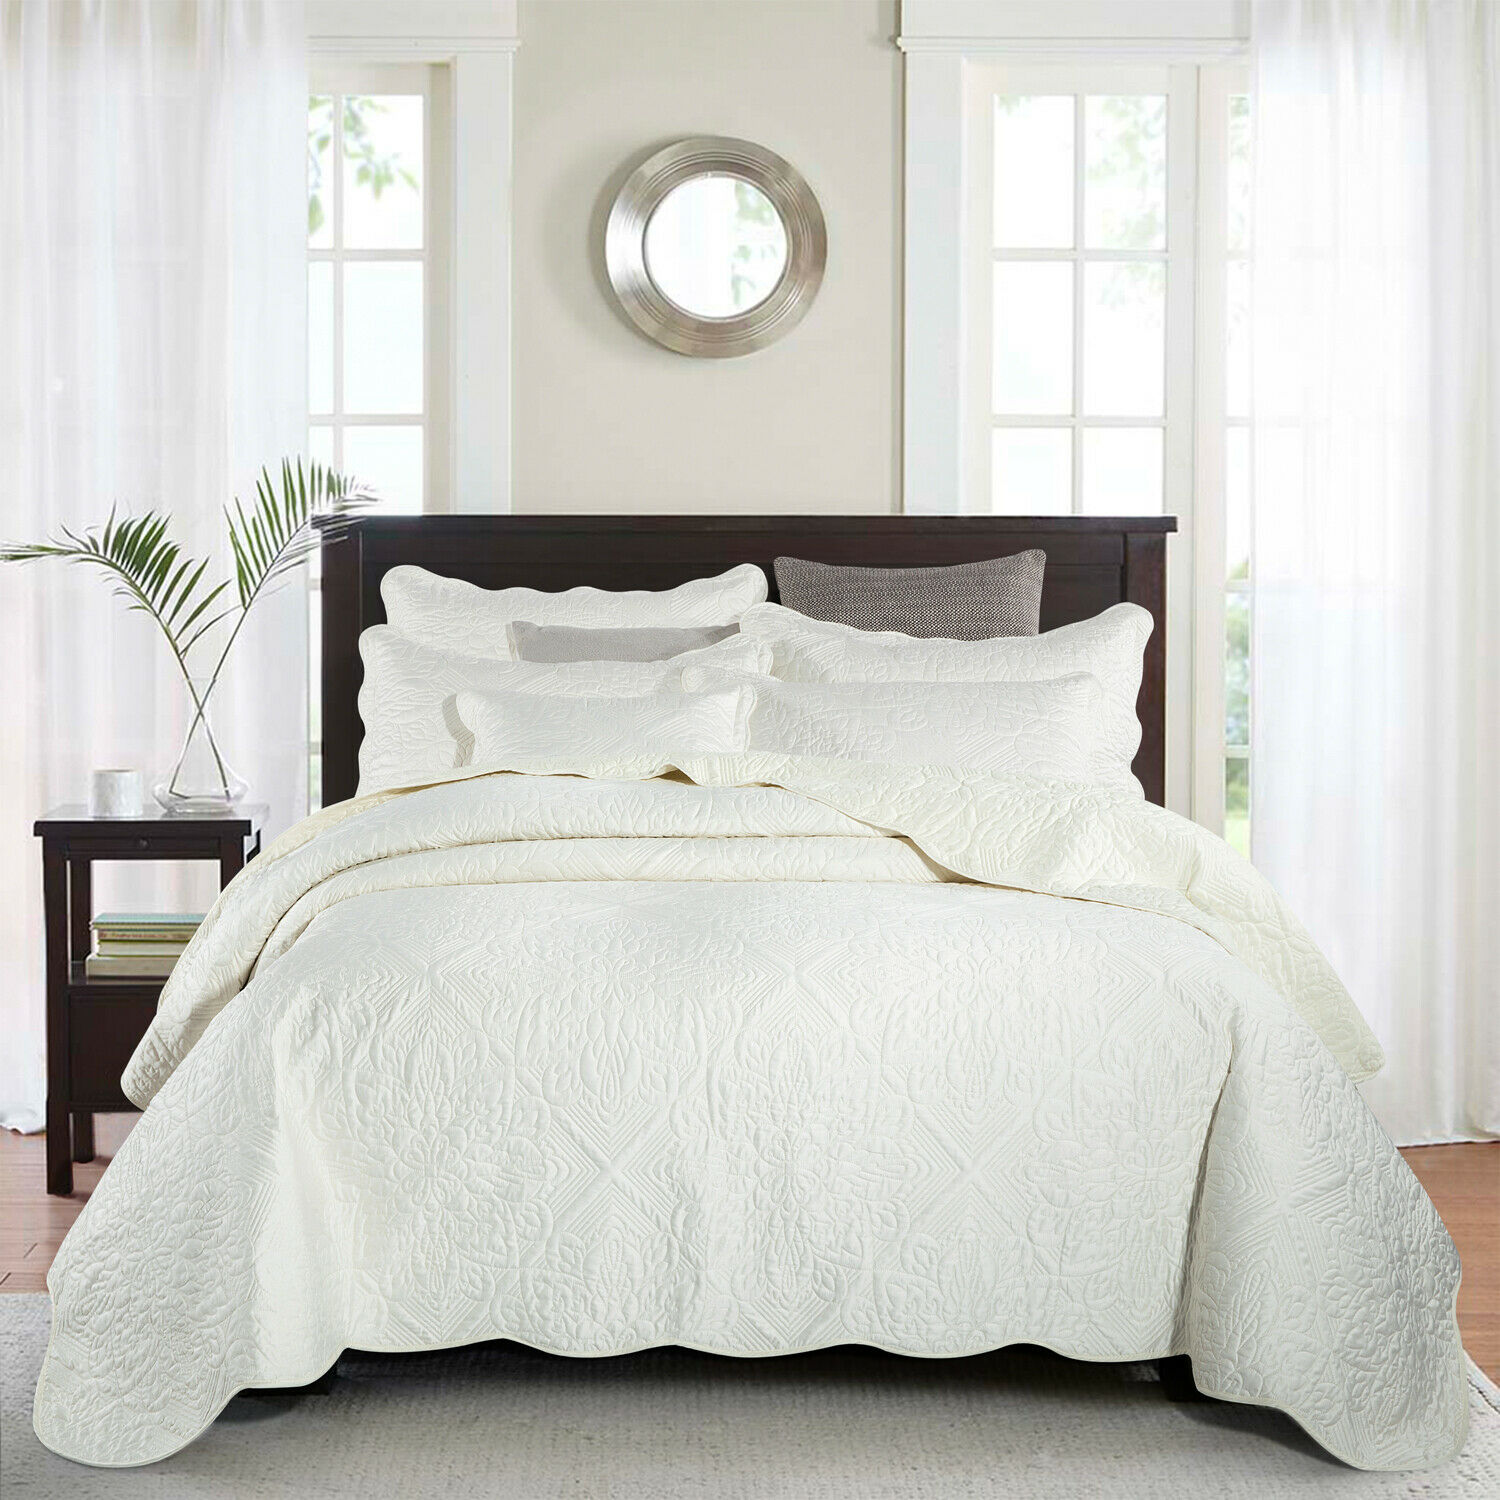 Modern Quilted Bedspread Set Bed Throw Comforter Set /& Pillow Shams Single-King